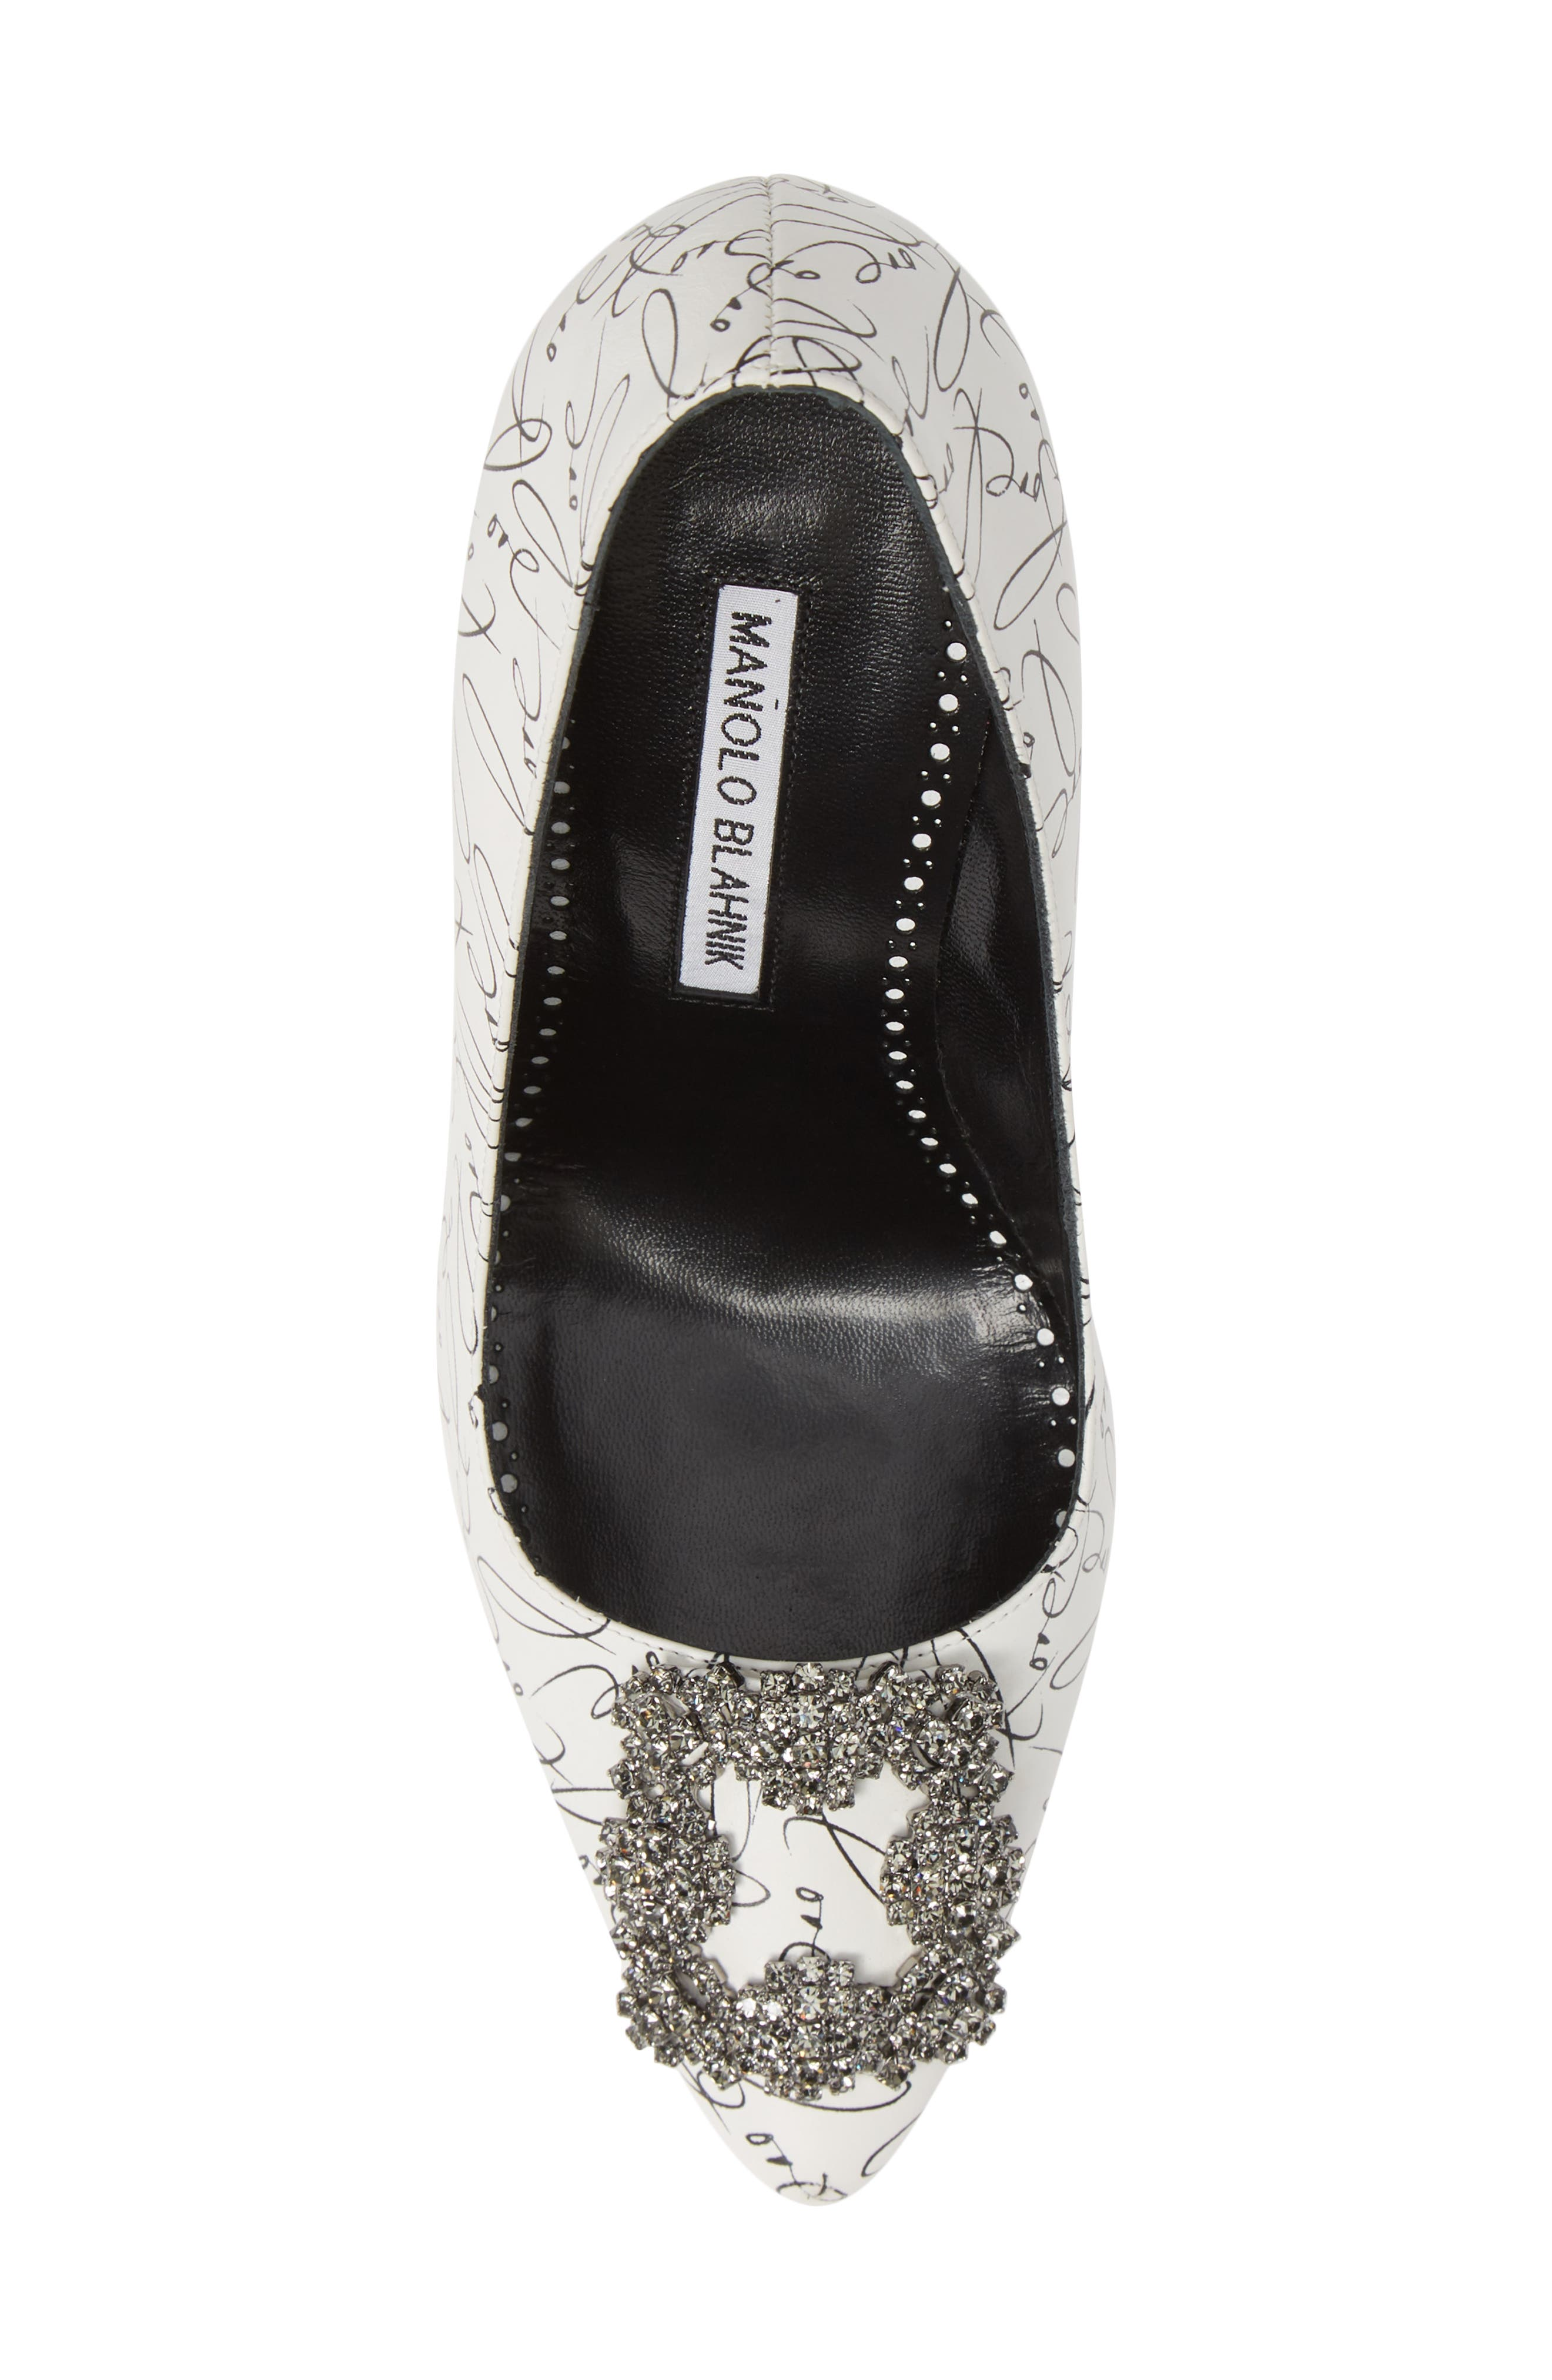 MANOLO BLAHNIK,                             Decade of Love Hangisi Anniversary Embellished Pump,                             Alternate thumbnail 5, color,                             WHITE LEATHER